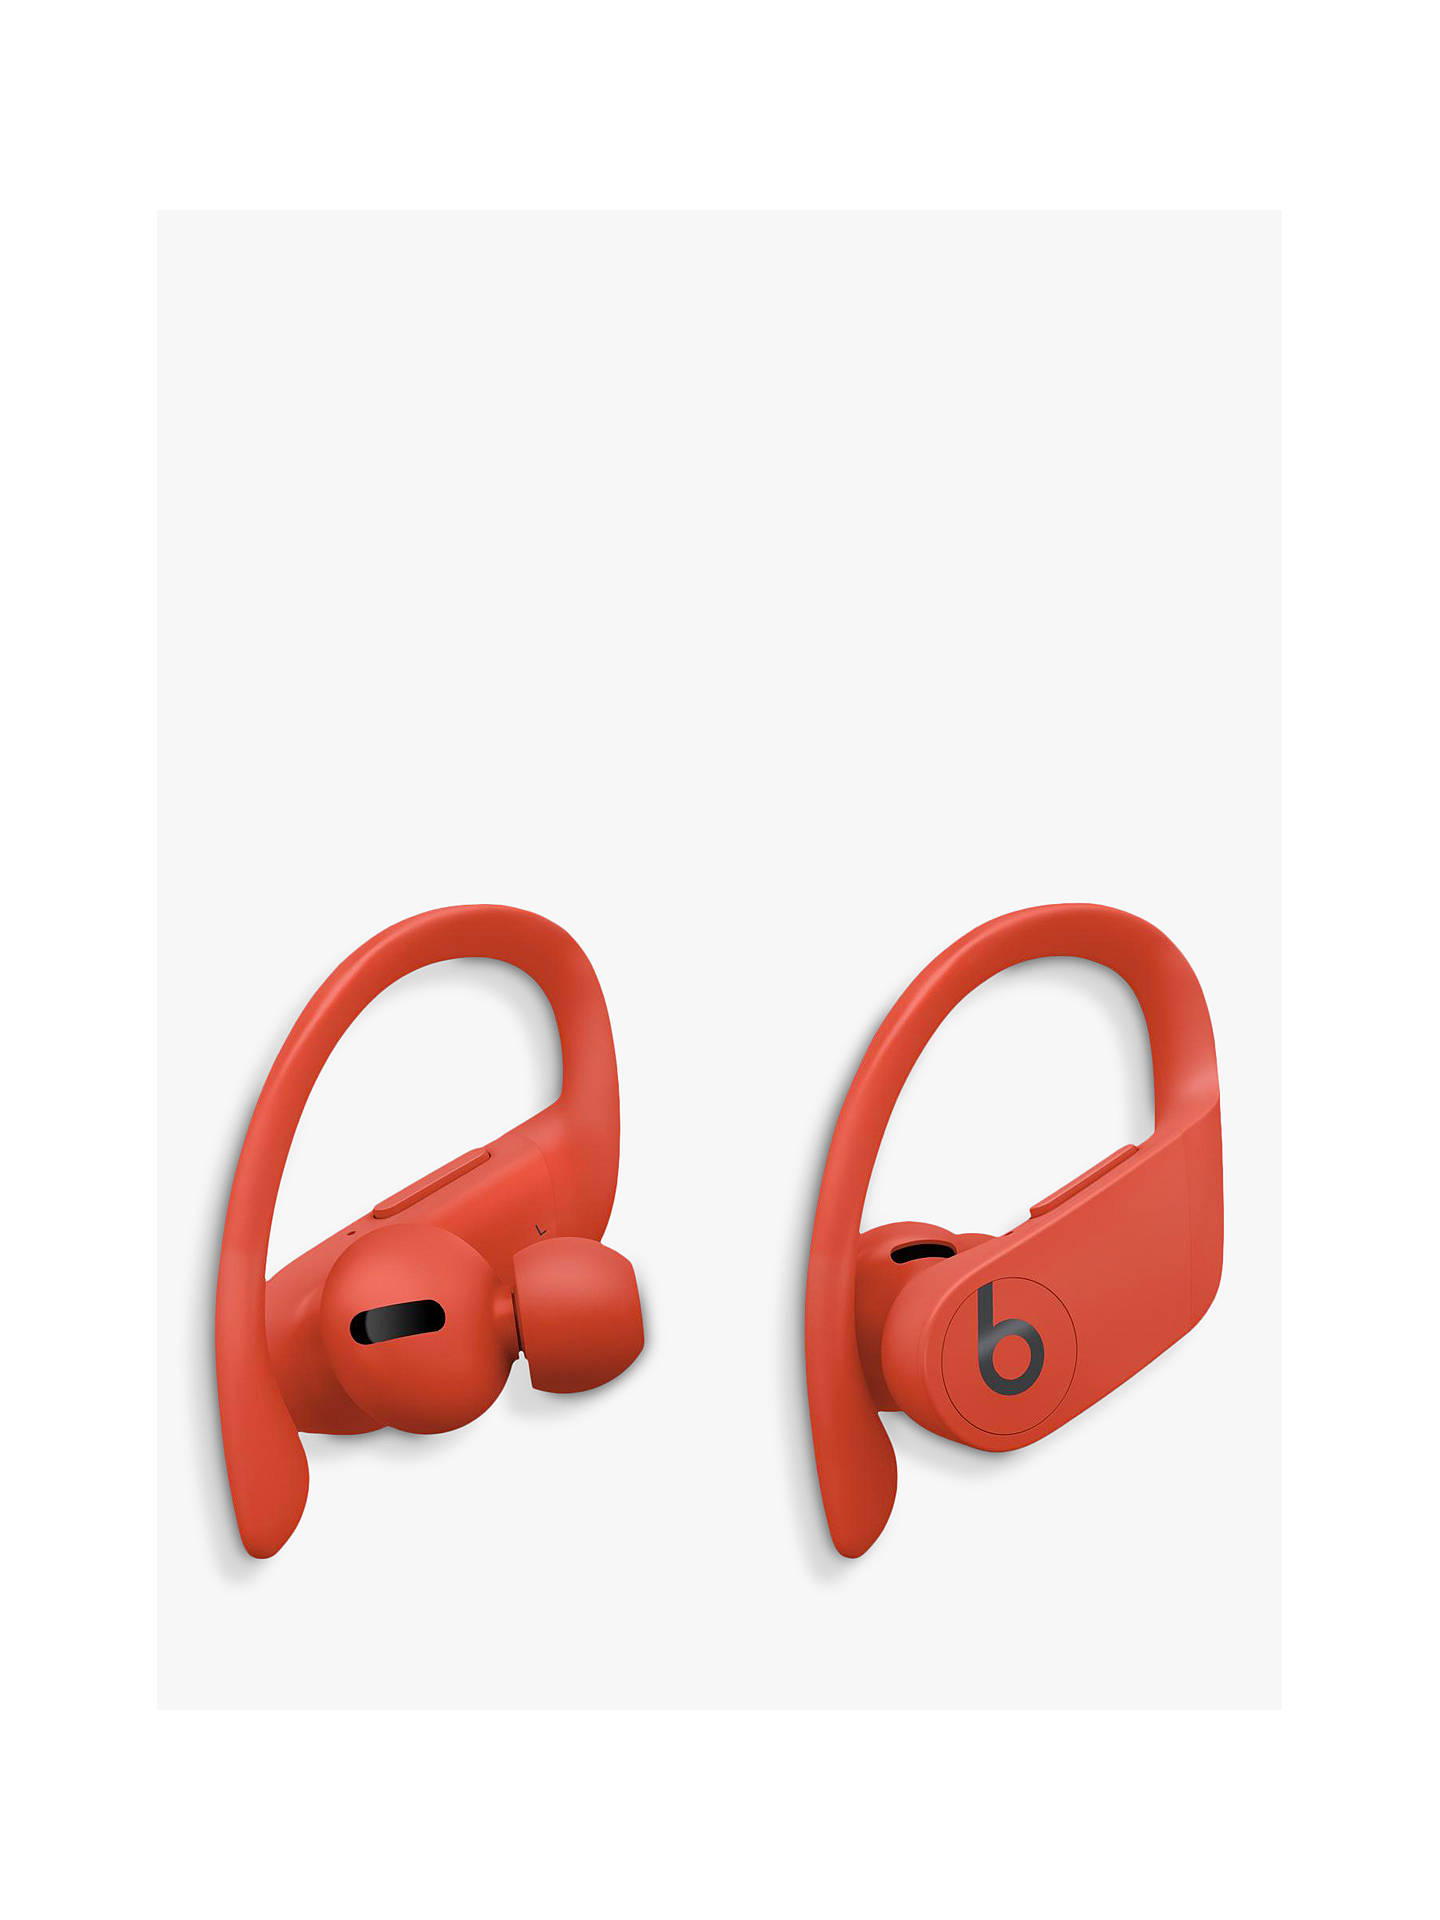 Buy Powerbeats Pro True Wireless Bluetooth In-Ear Sport Headphones with Mic/Remote, Lava Red Online at johnlewis.com